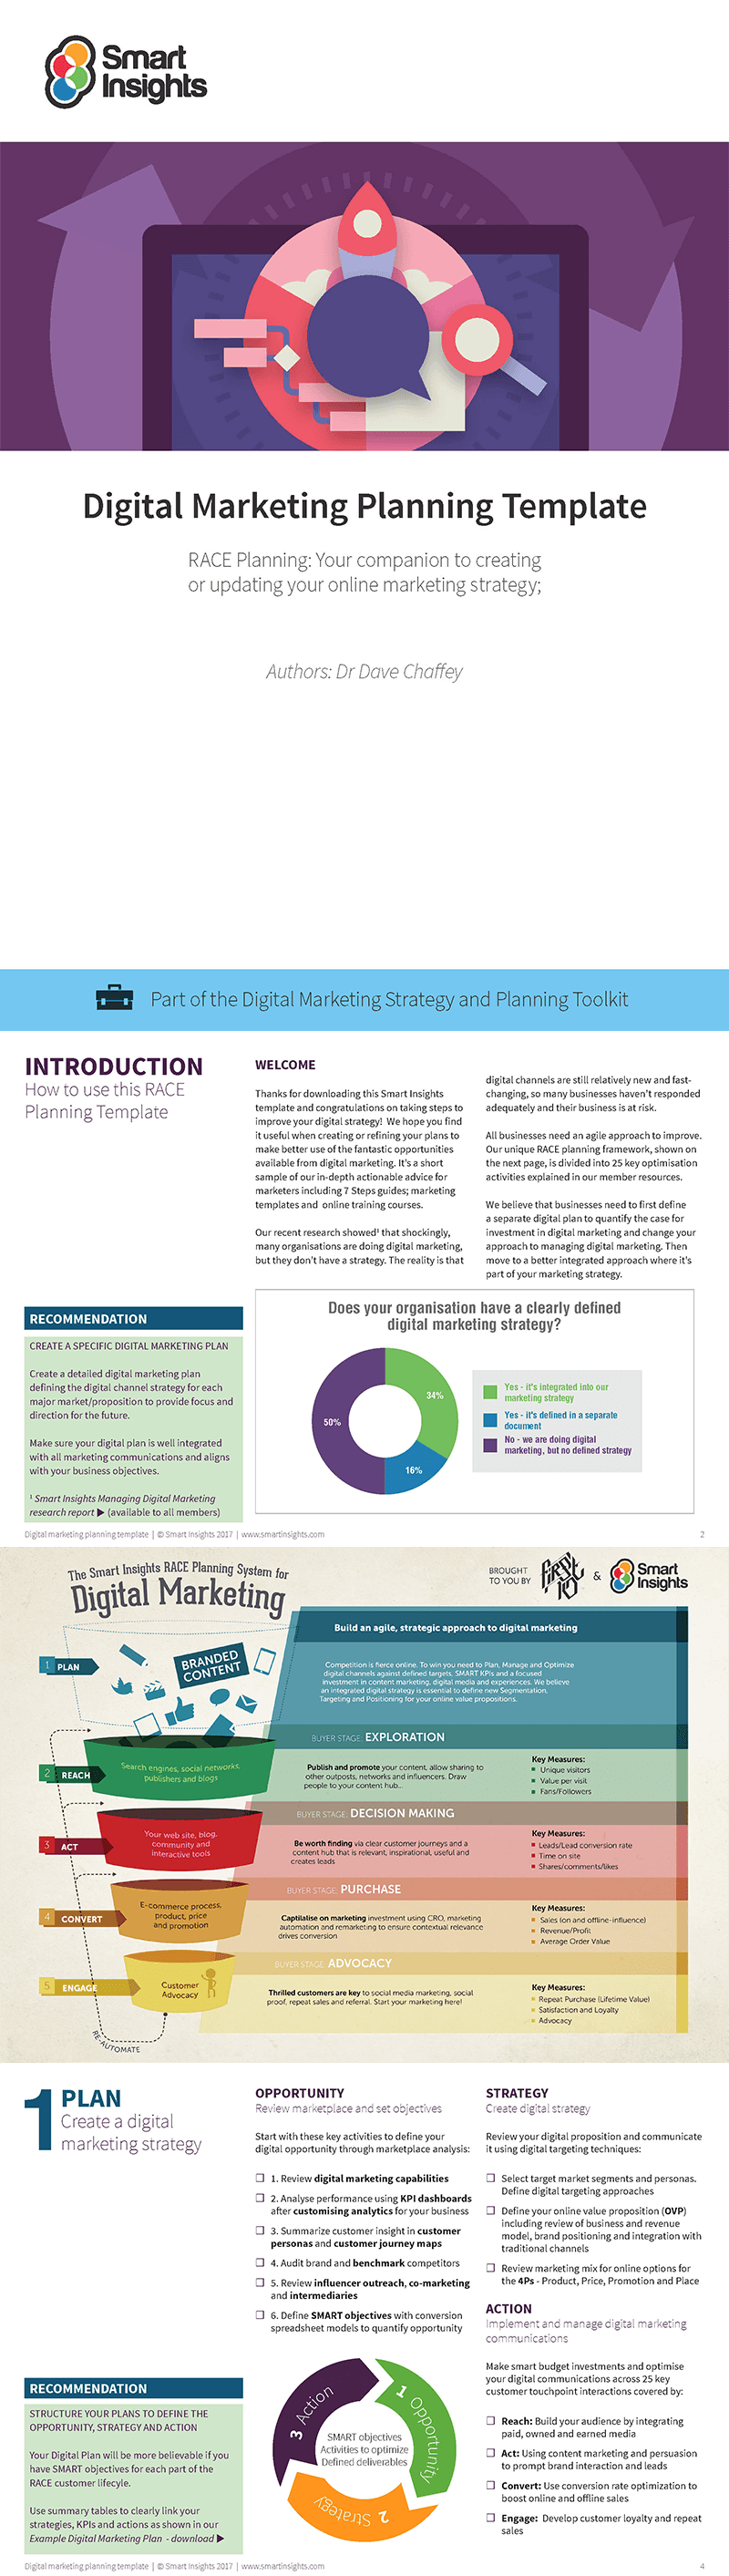 promotional strategy template - free digital marketing plan template smart insights